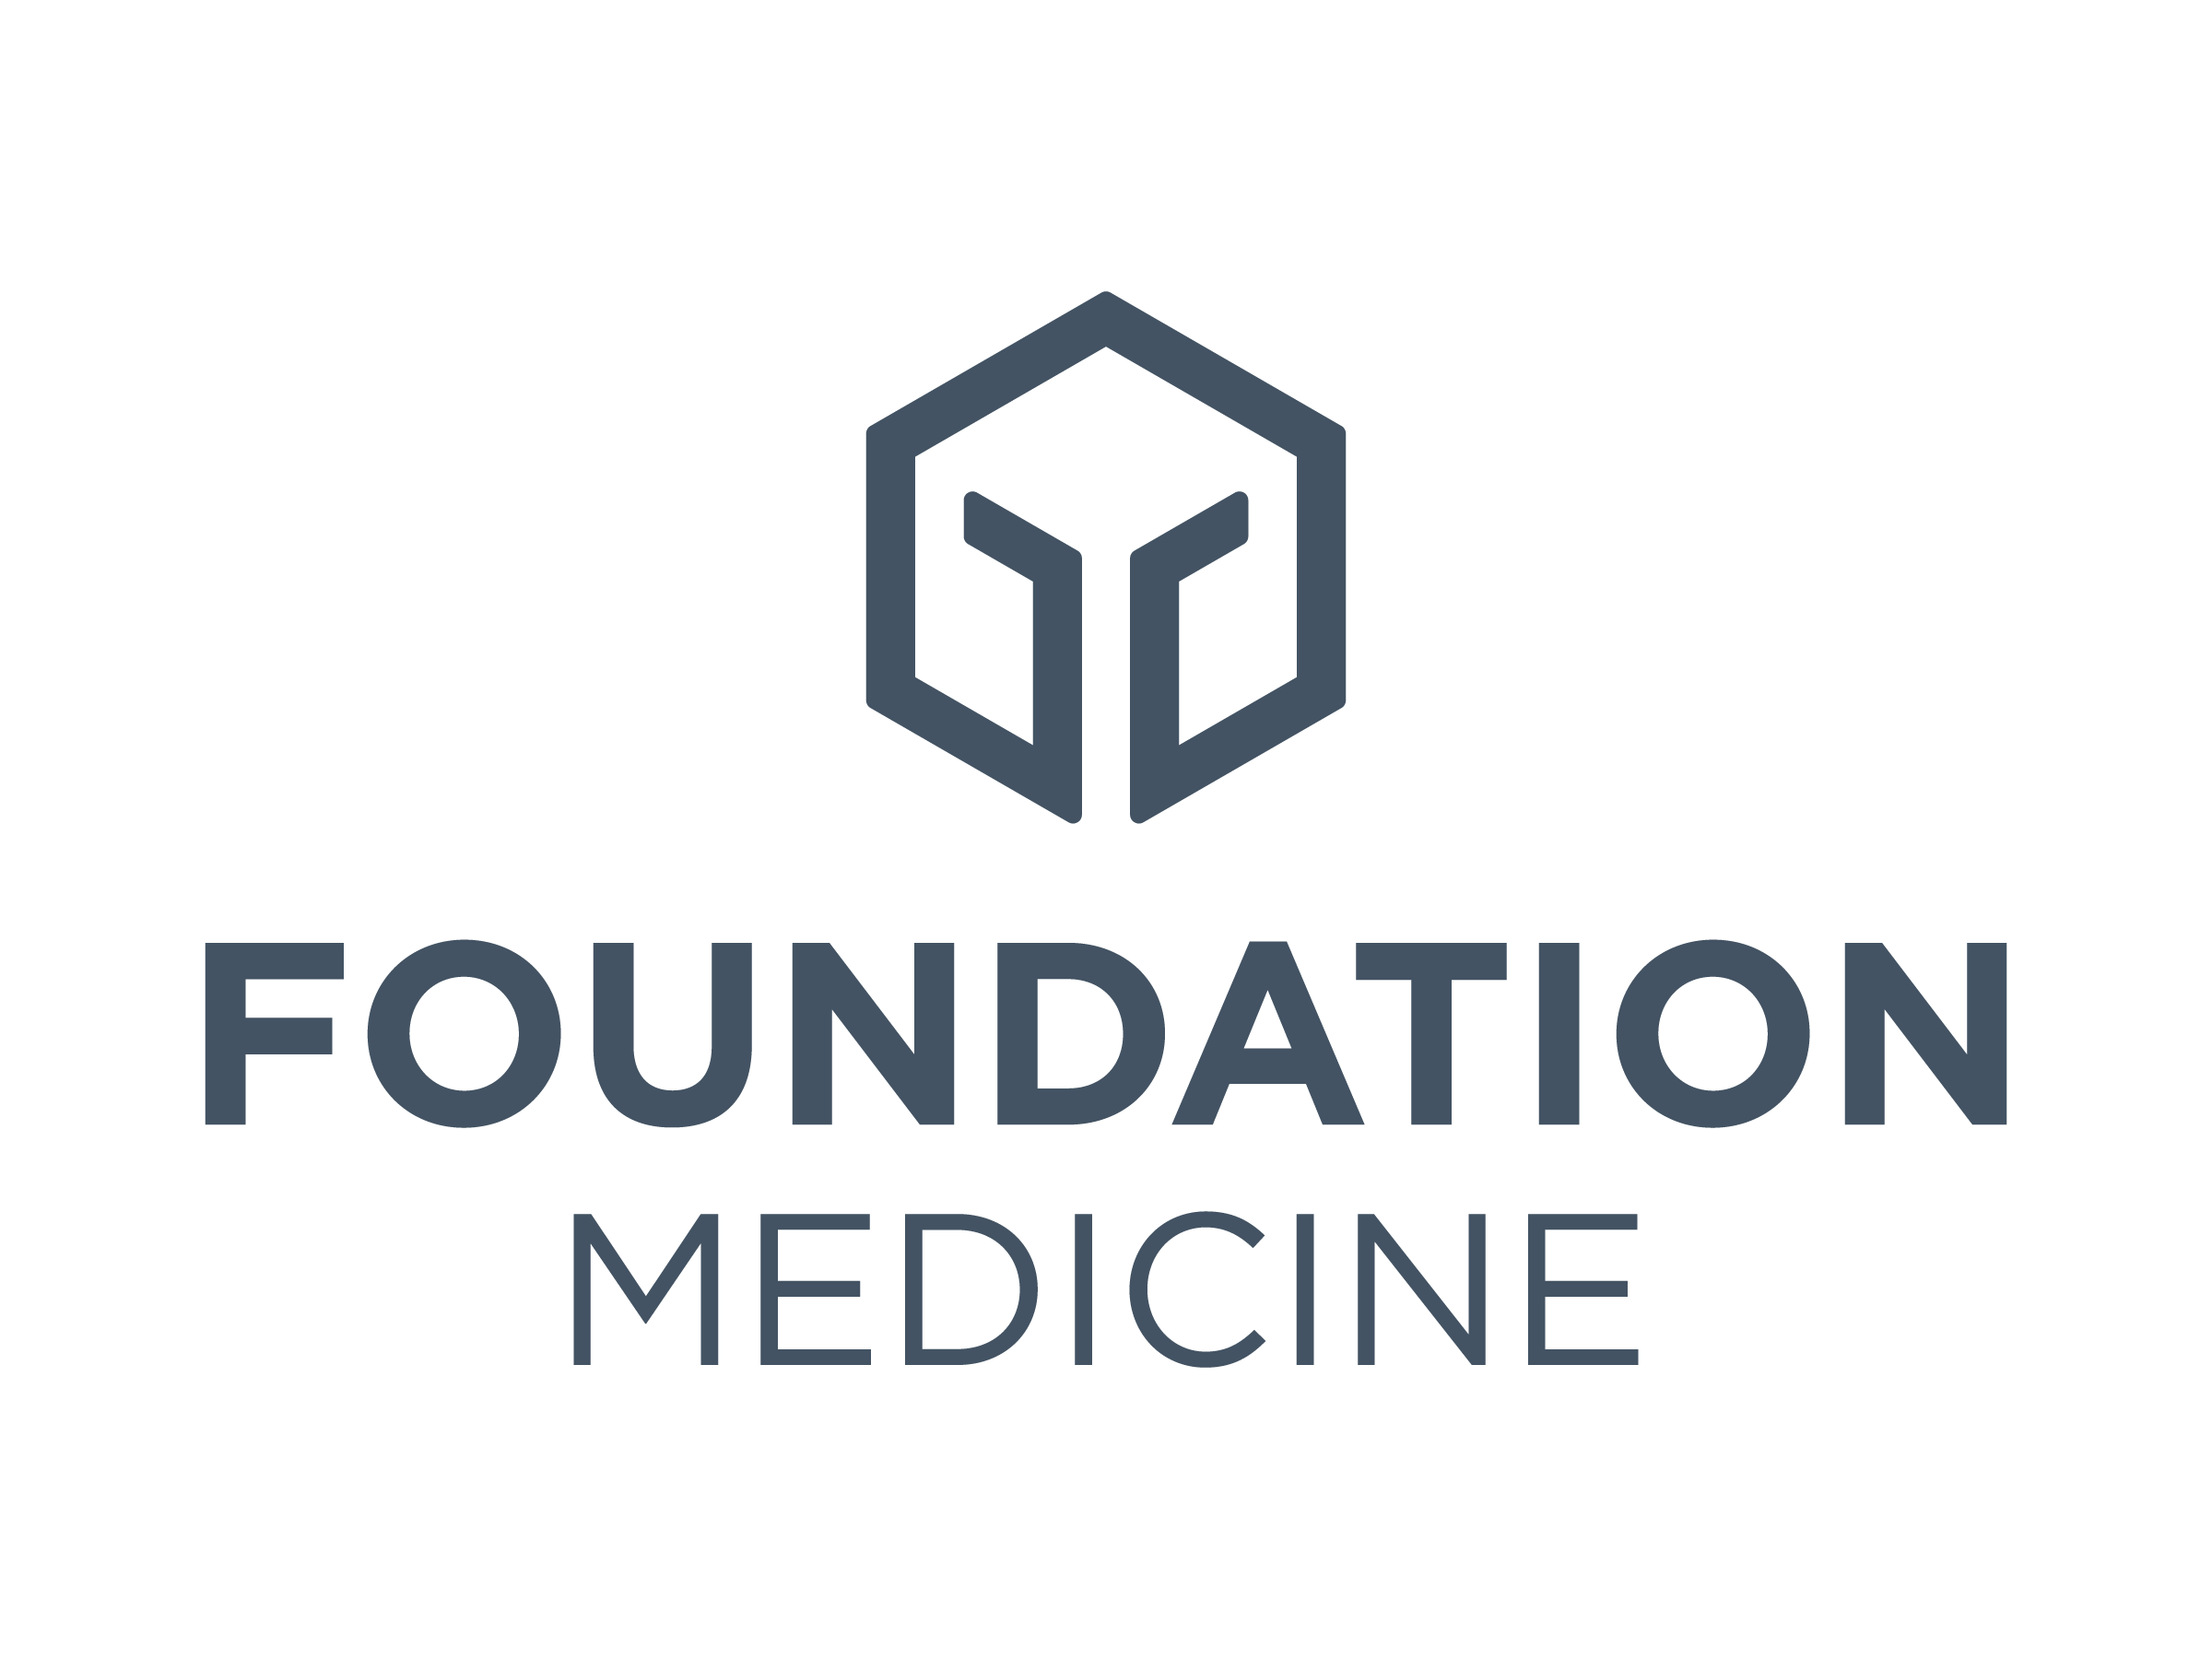 Foundation Medicine, Inc. logo